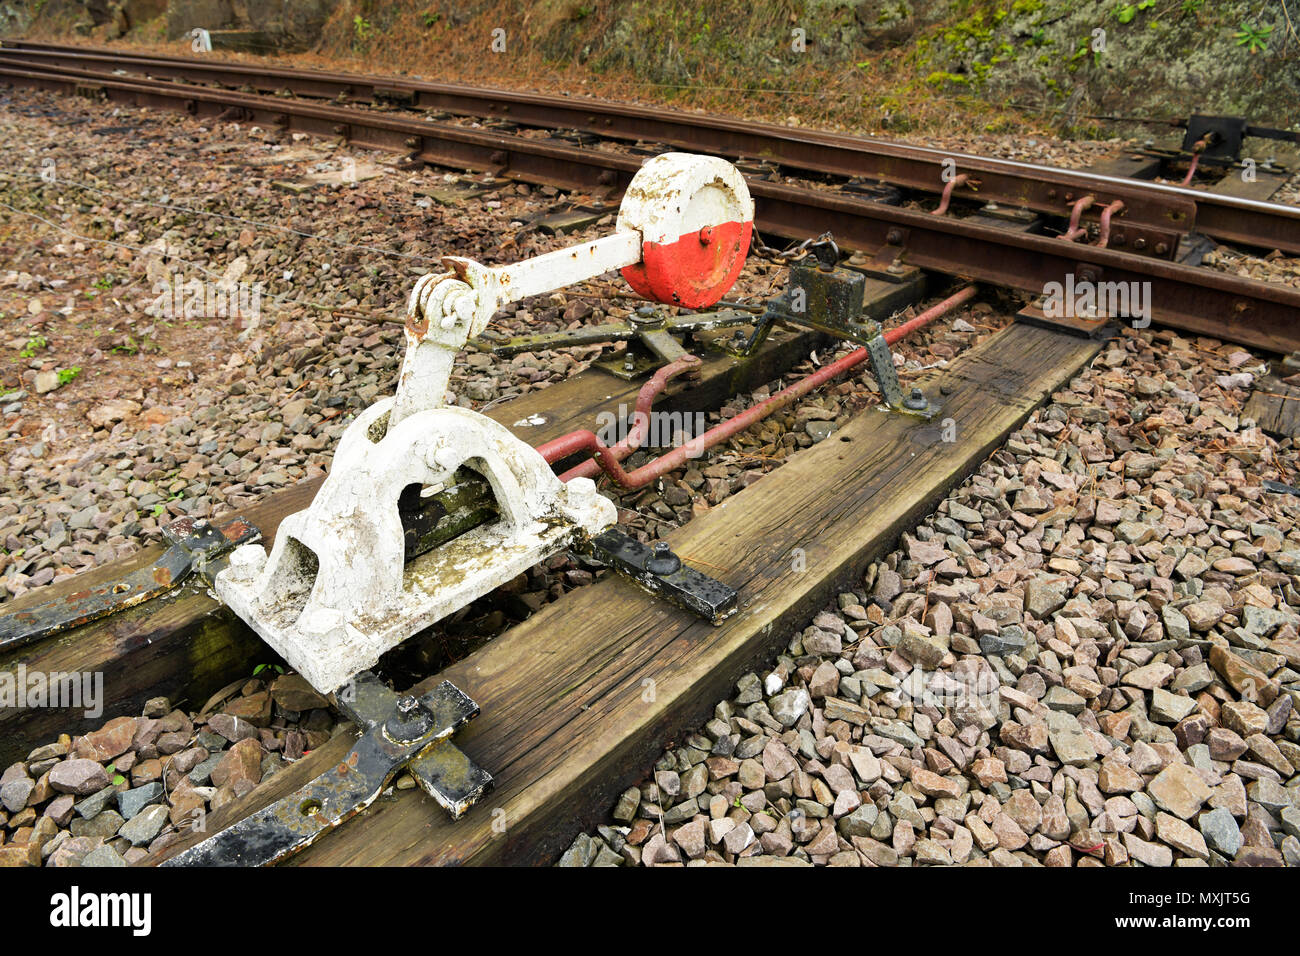 Close-up, detail, vintage railroad switchgear to change tracks for train shunting - Stock Image